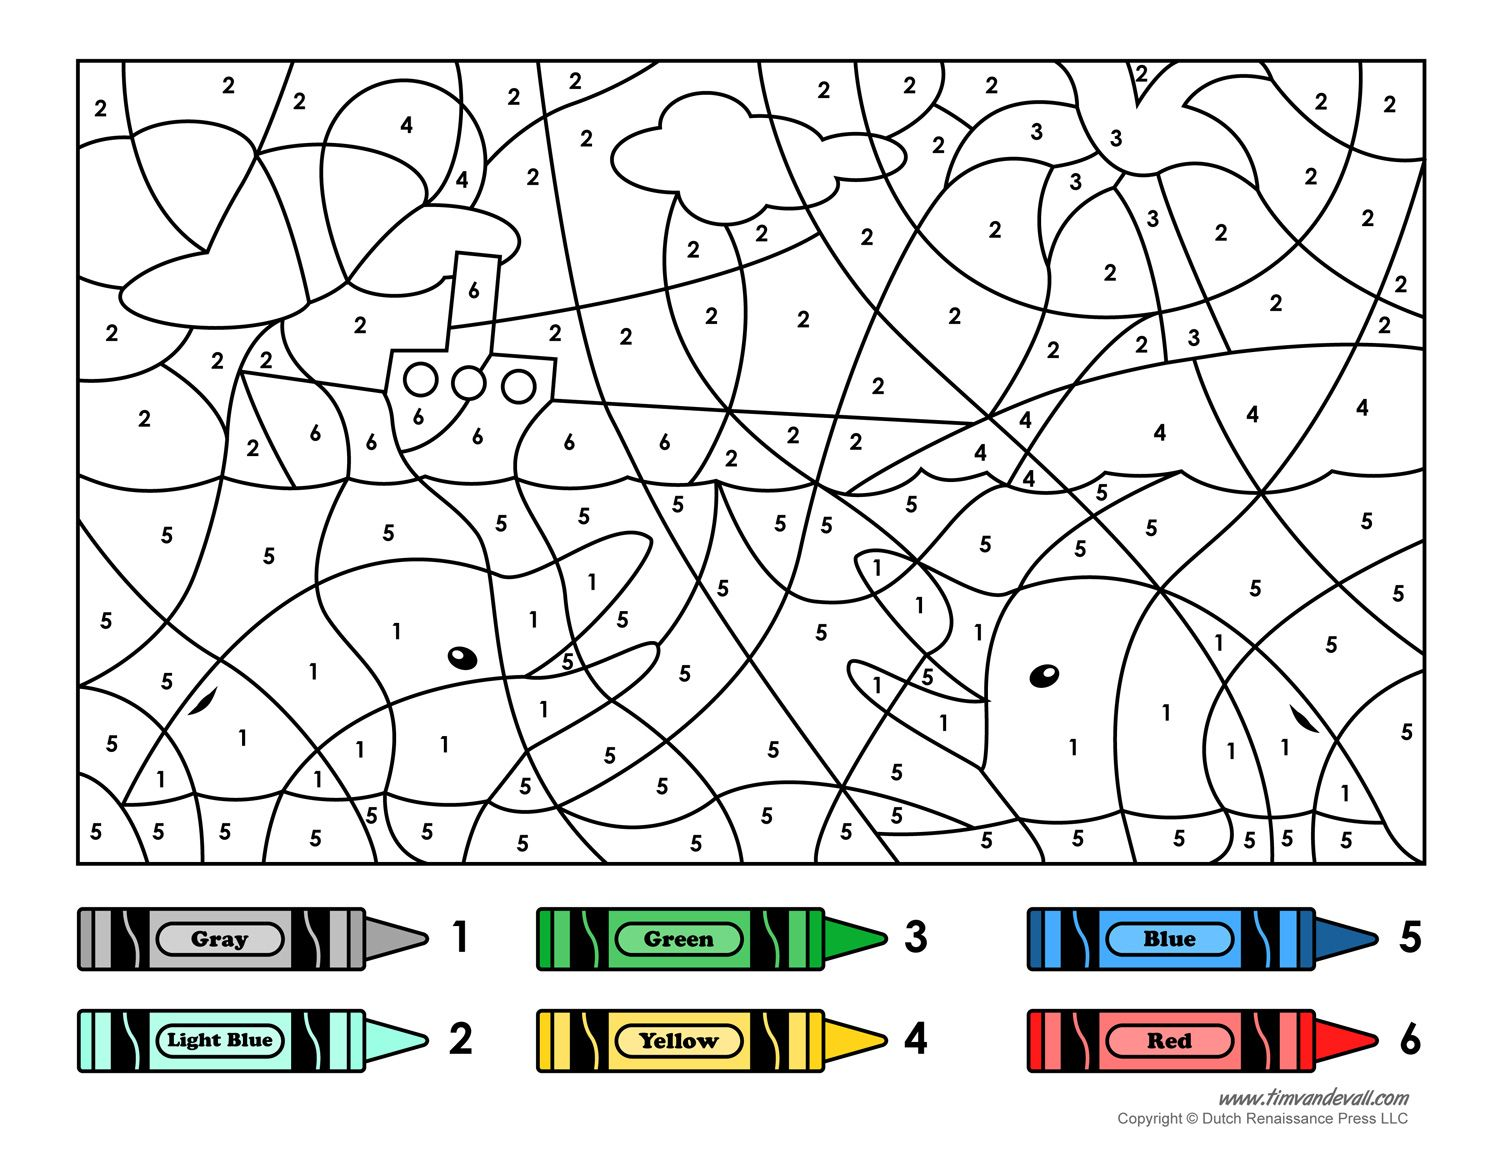 Coloring worksheet by numbers - Color Worksheets By Numbers Coloring By Numbers Fascinating 1500 X 1159 336 Kb Jpeg Dolphin